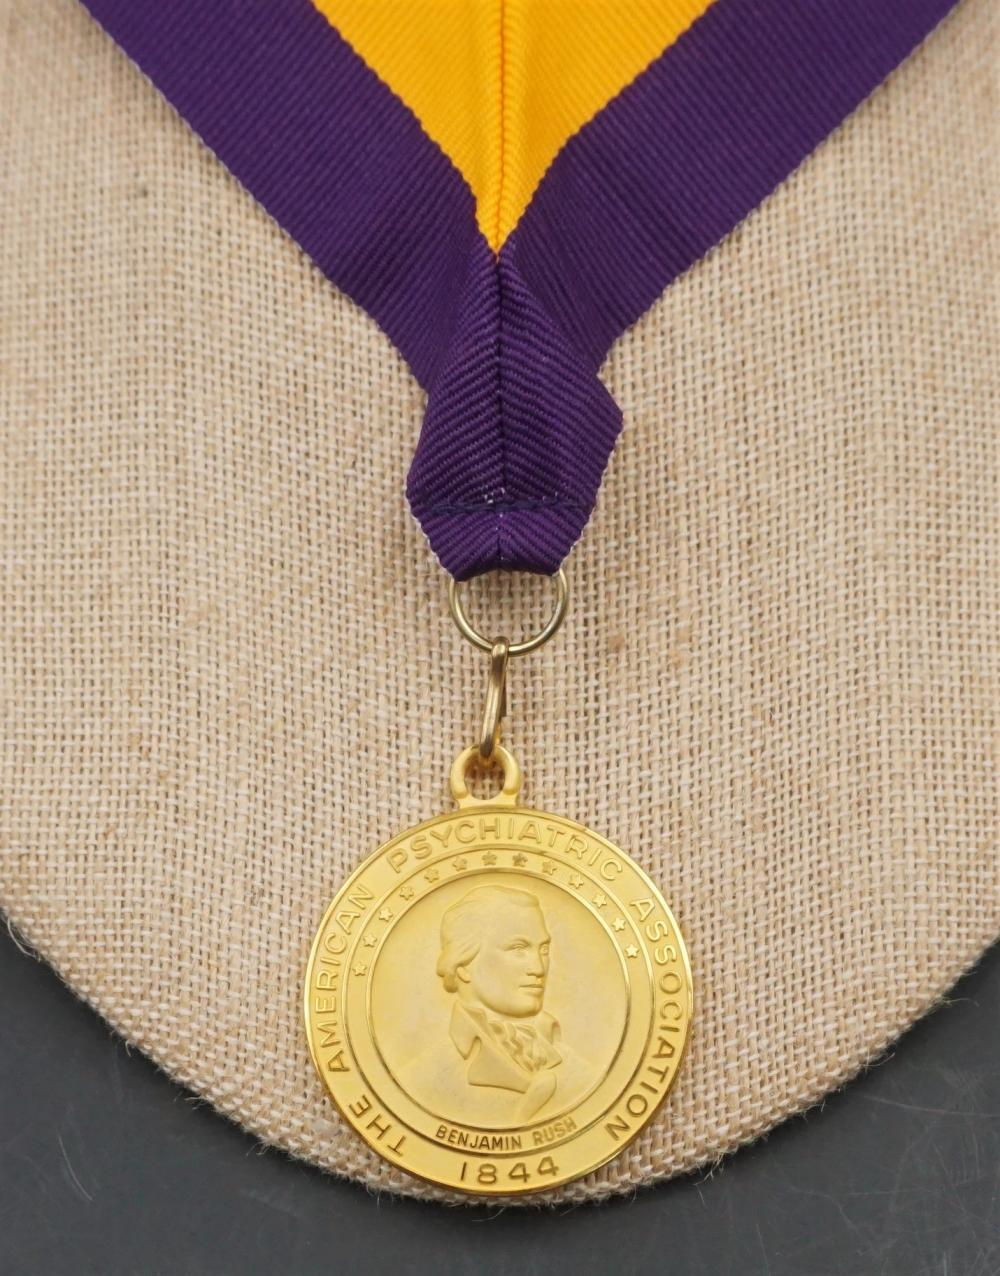 Psychiatry medal - 50 years of service